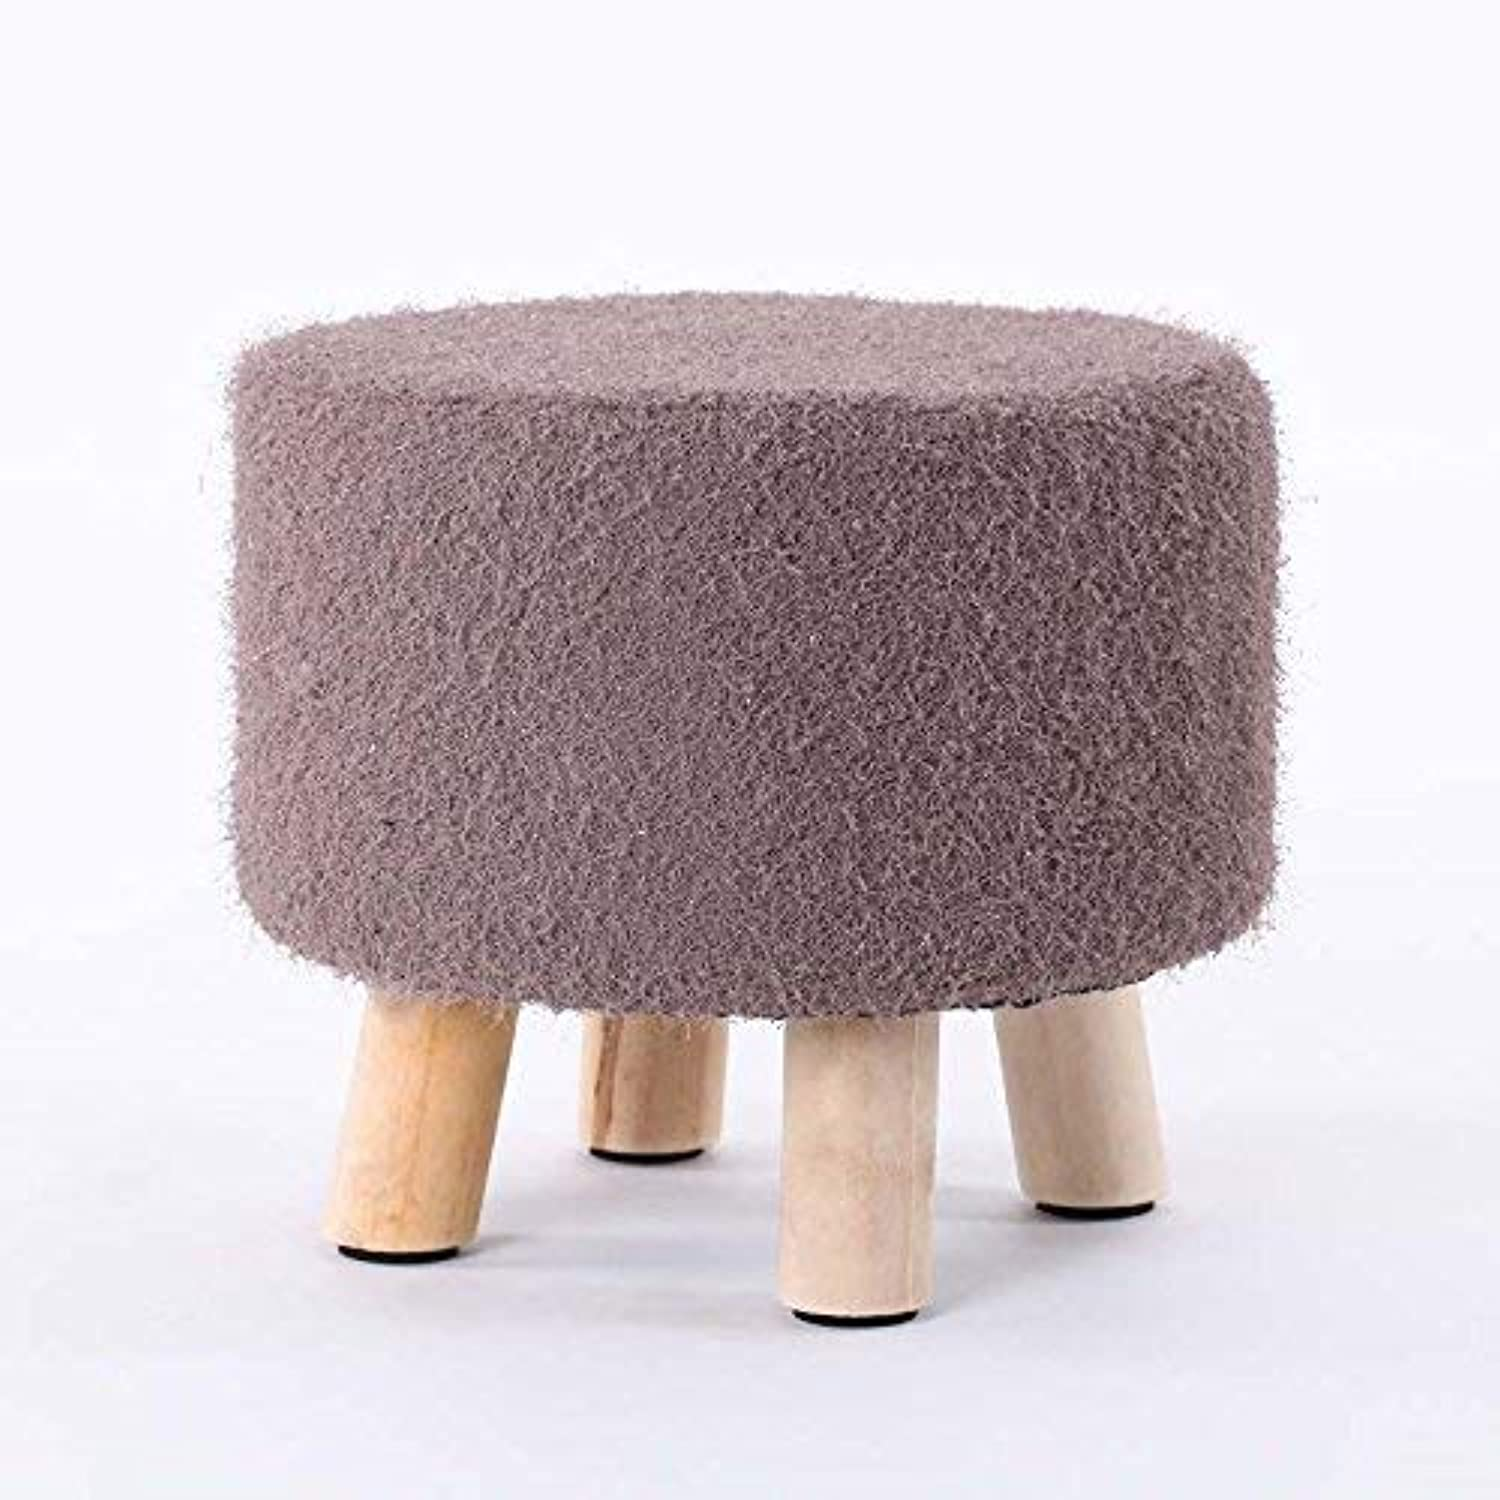 QTQZ Brisk- Removable Washable Round Stool Solid Wood Simple Bench Sofa Stool Creative Low Stool for shoes Stool Sofa Stool (color Optional) (color  13)